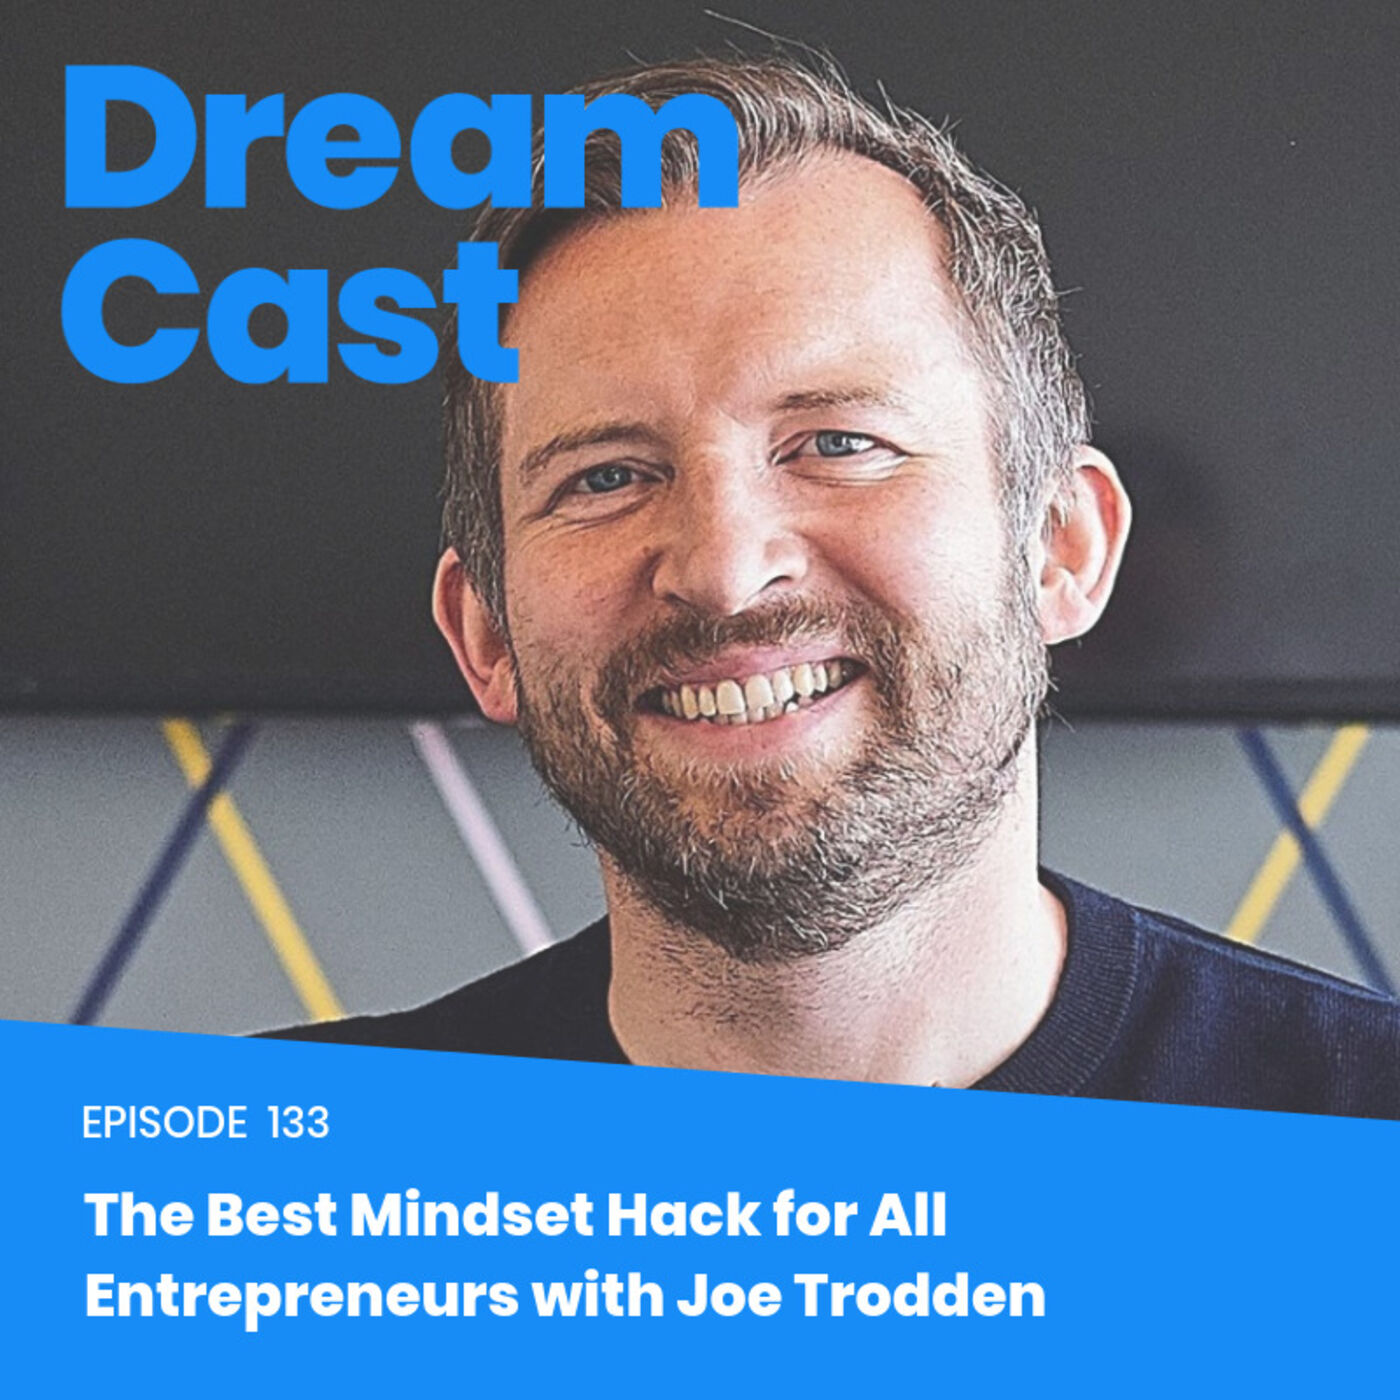 Episode 133 - The Best Mindset Hack for All Entrepreneurs with Joe Trodden